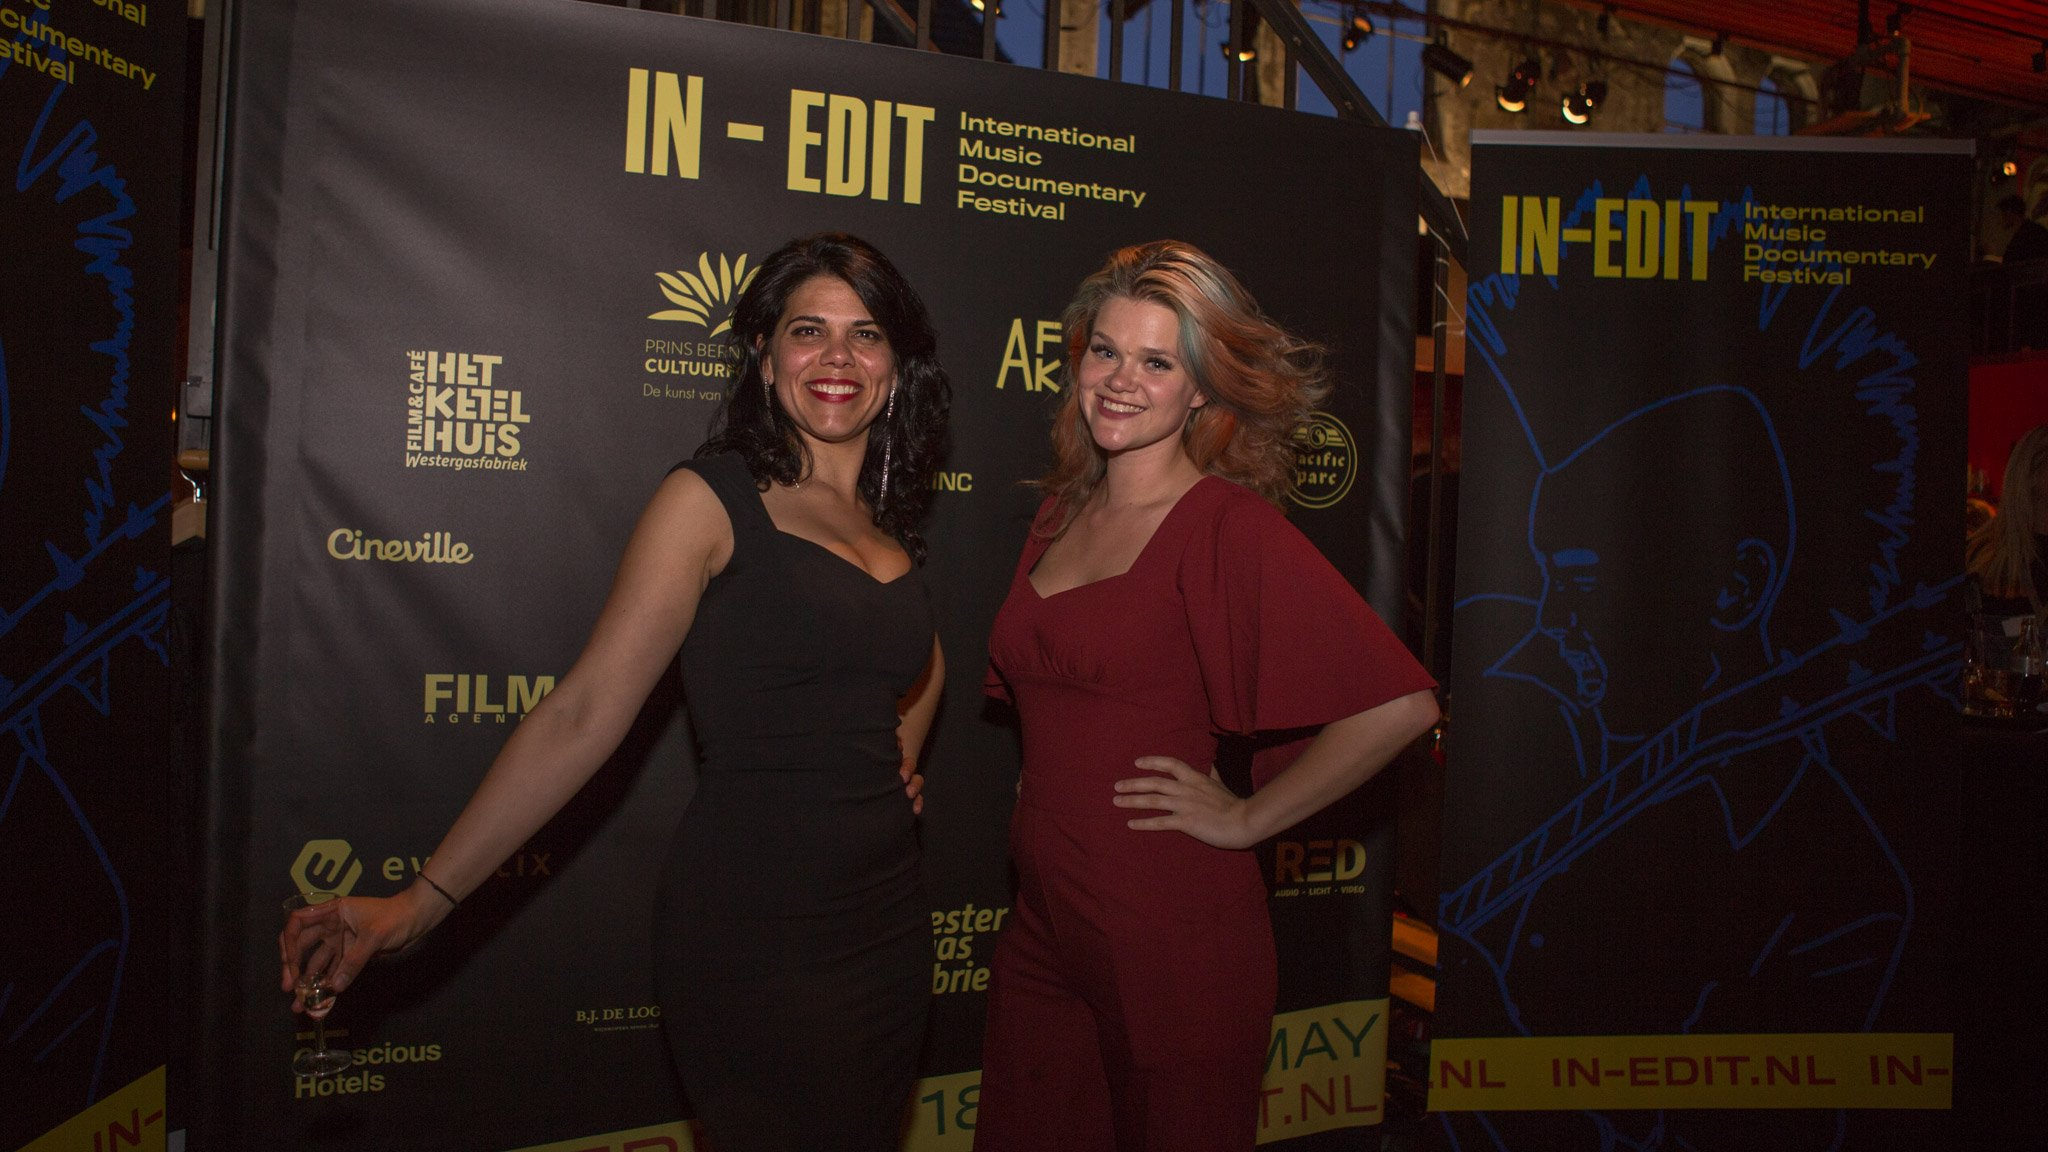 IN-EDIT is back!  Interview with Carla Navarro       and Anna Chvartchenko